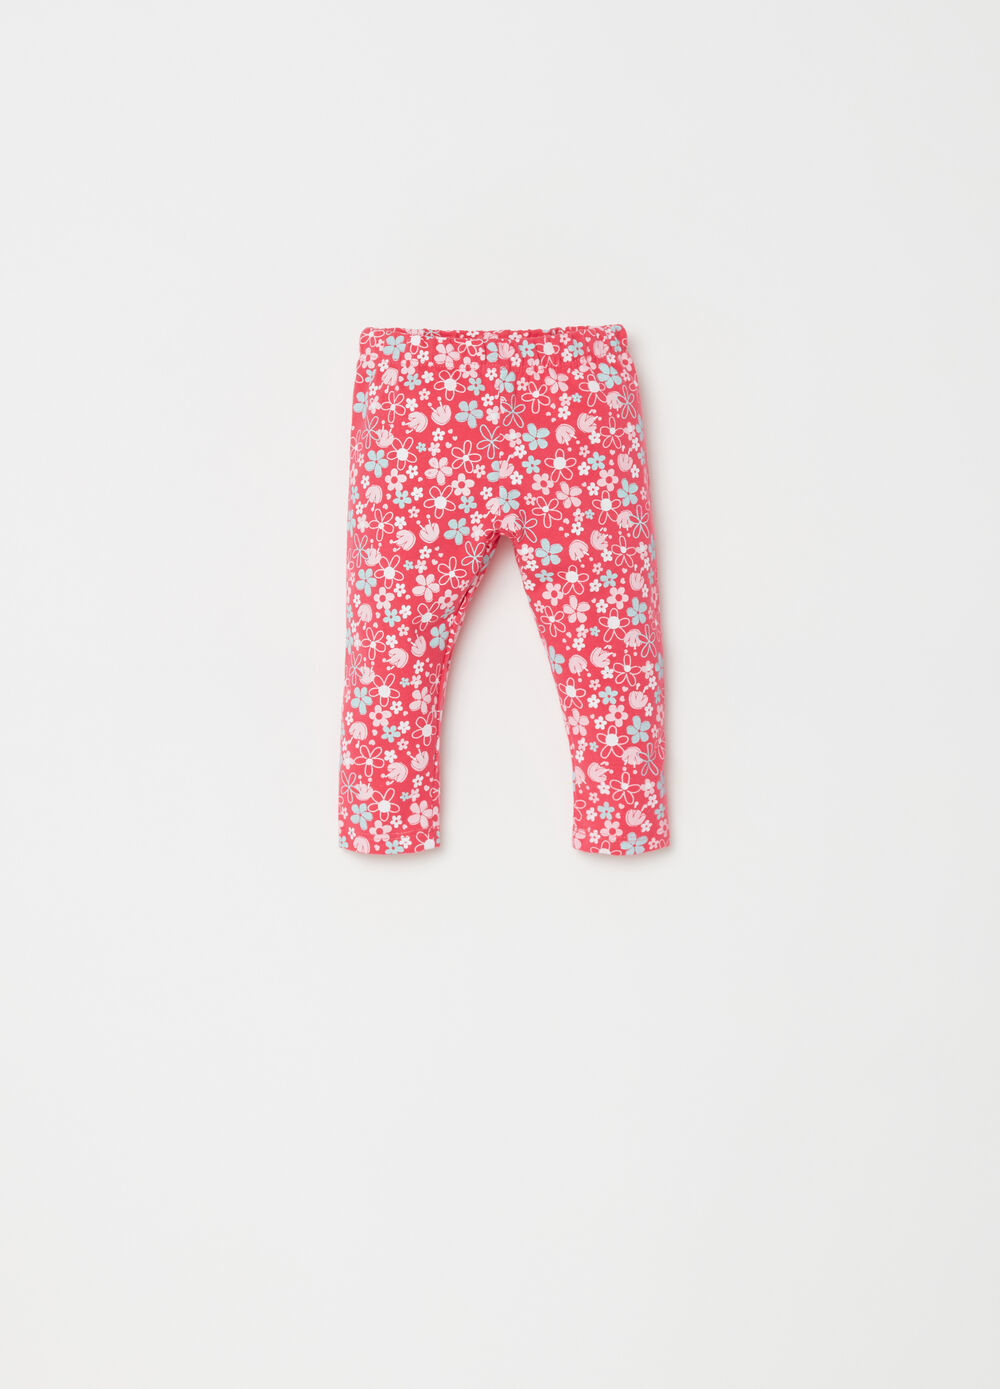 Leggings in BCI cotton with floral pattern